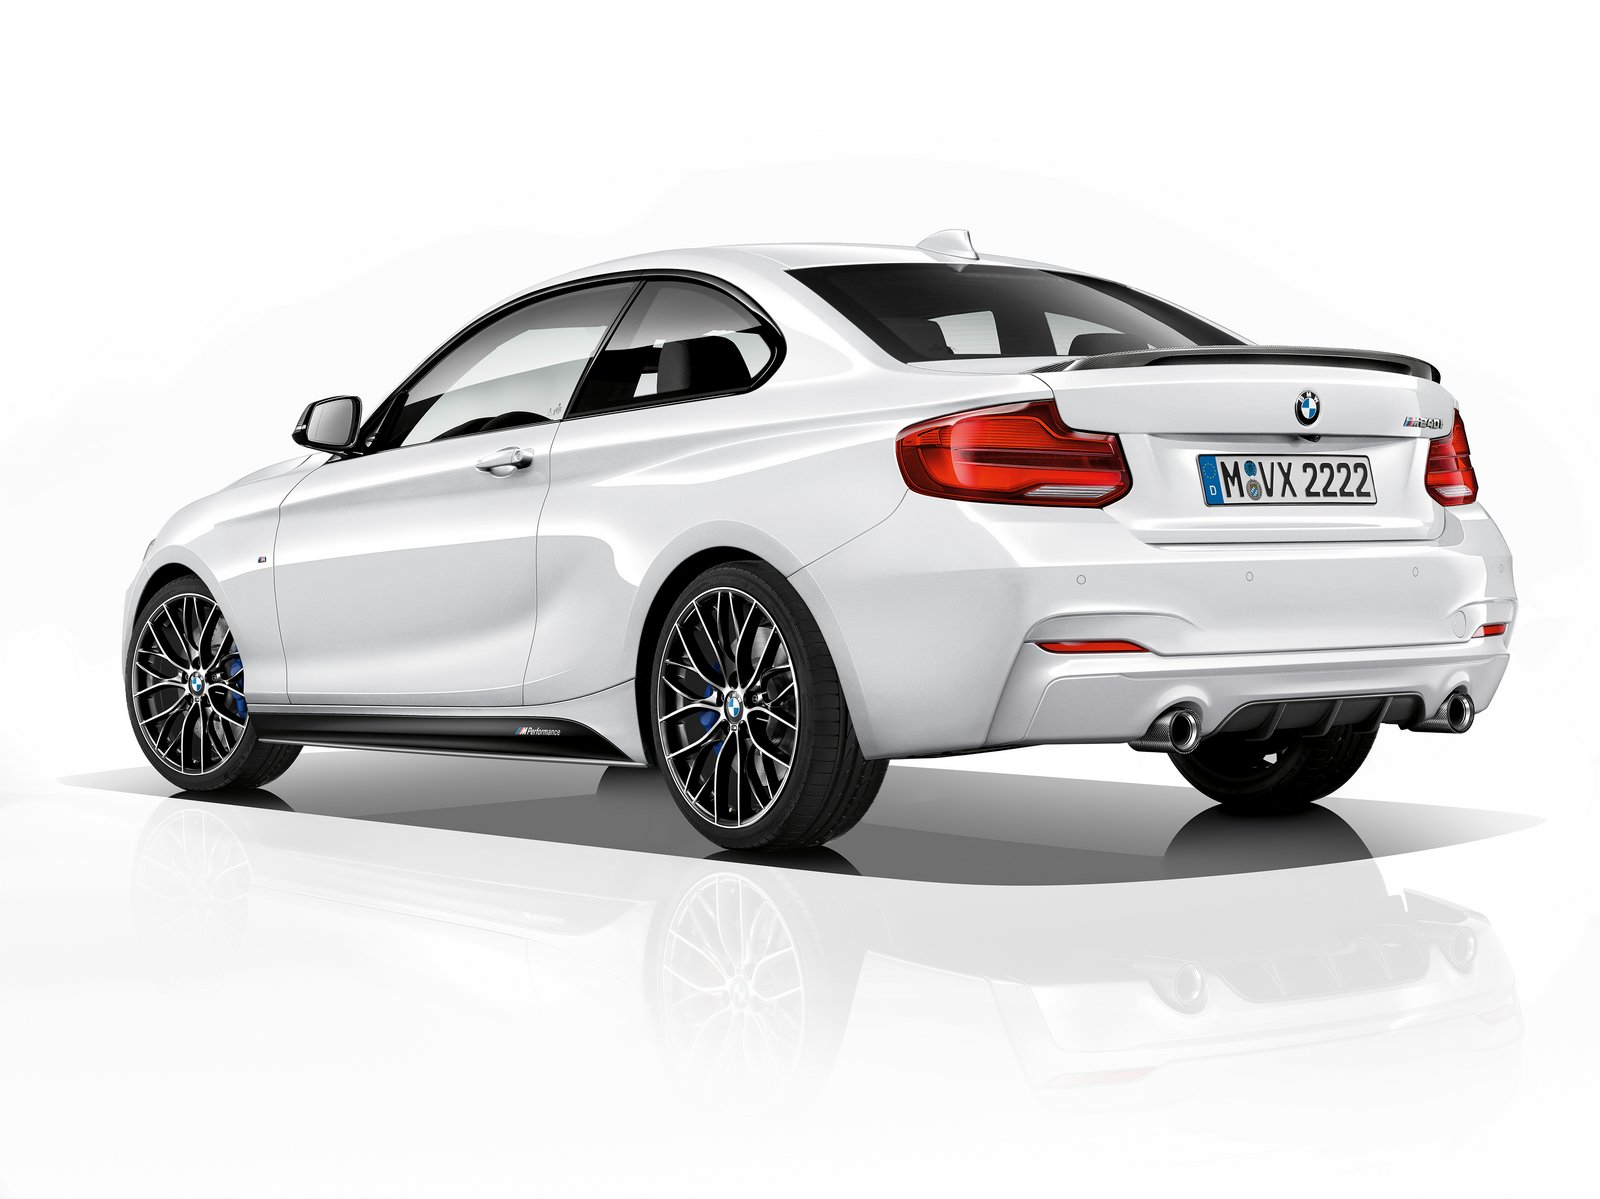 new bmw m240i m performance edition boasts 335 hp and m performance parts carscoops. Black Bedroom Furniture Sets. Home Design Ideas